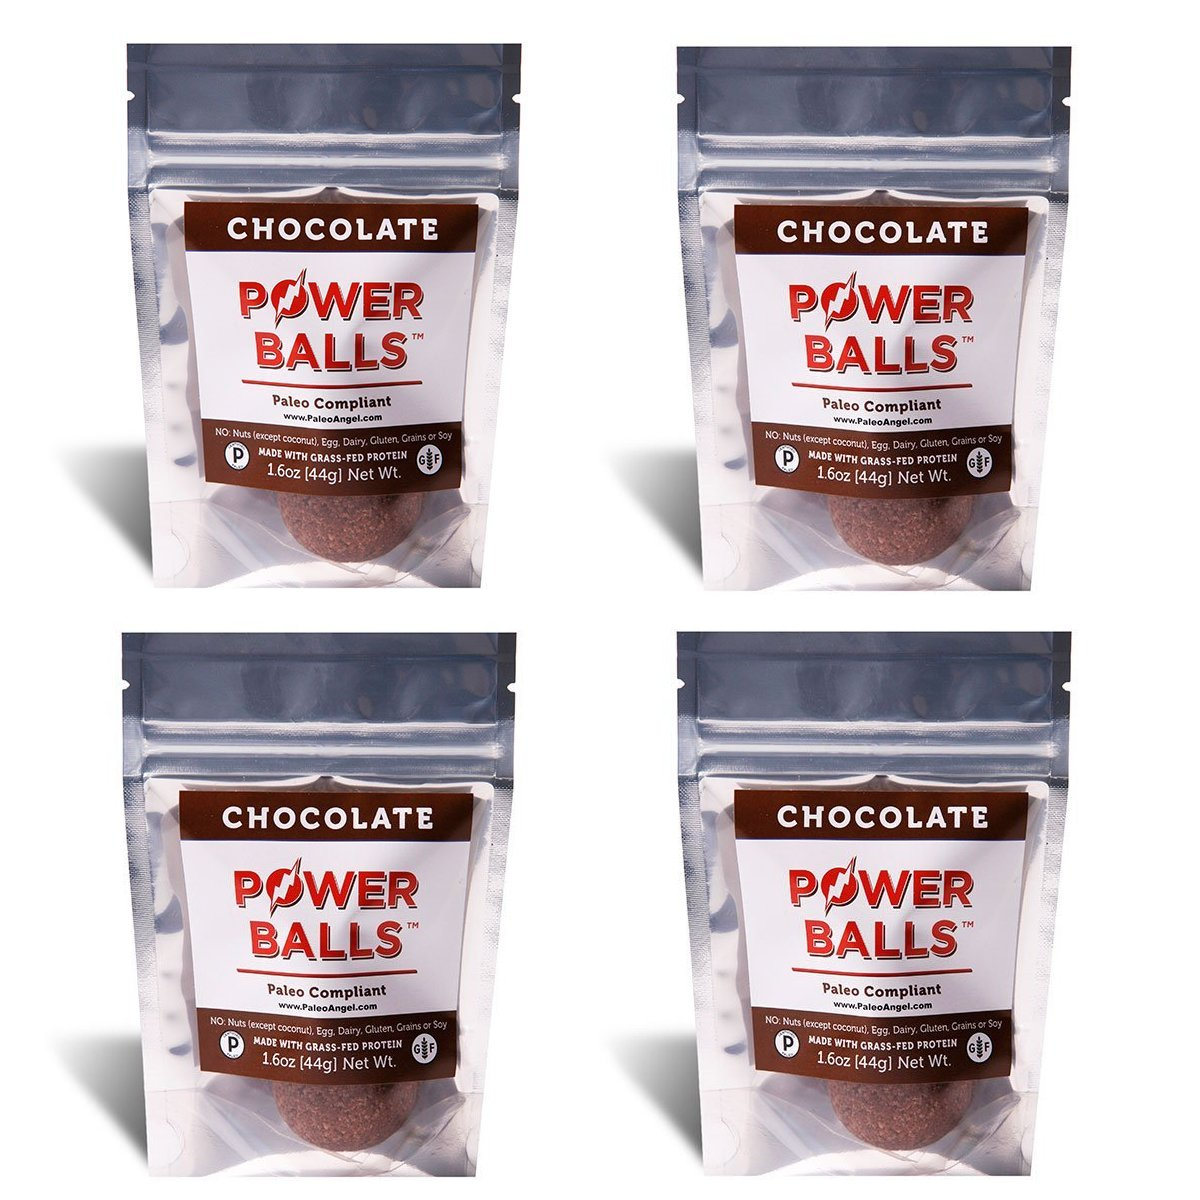 Paleo Angel Power Balls Healthy Paleo Approved Gluten Free Protein Snack Bars (Chocolate 4-Pack)